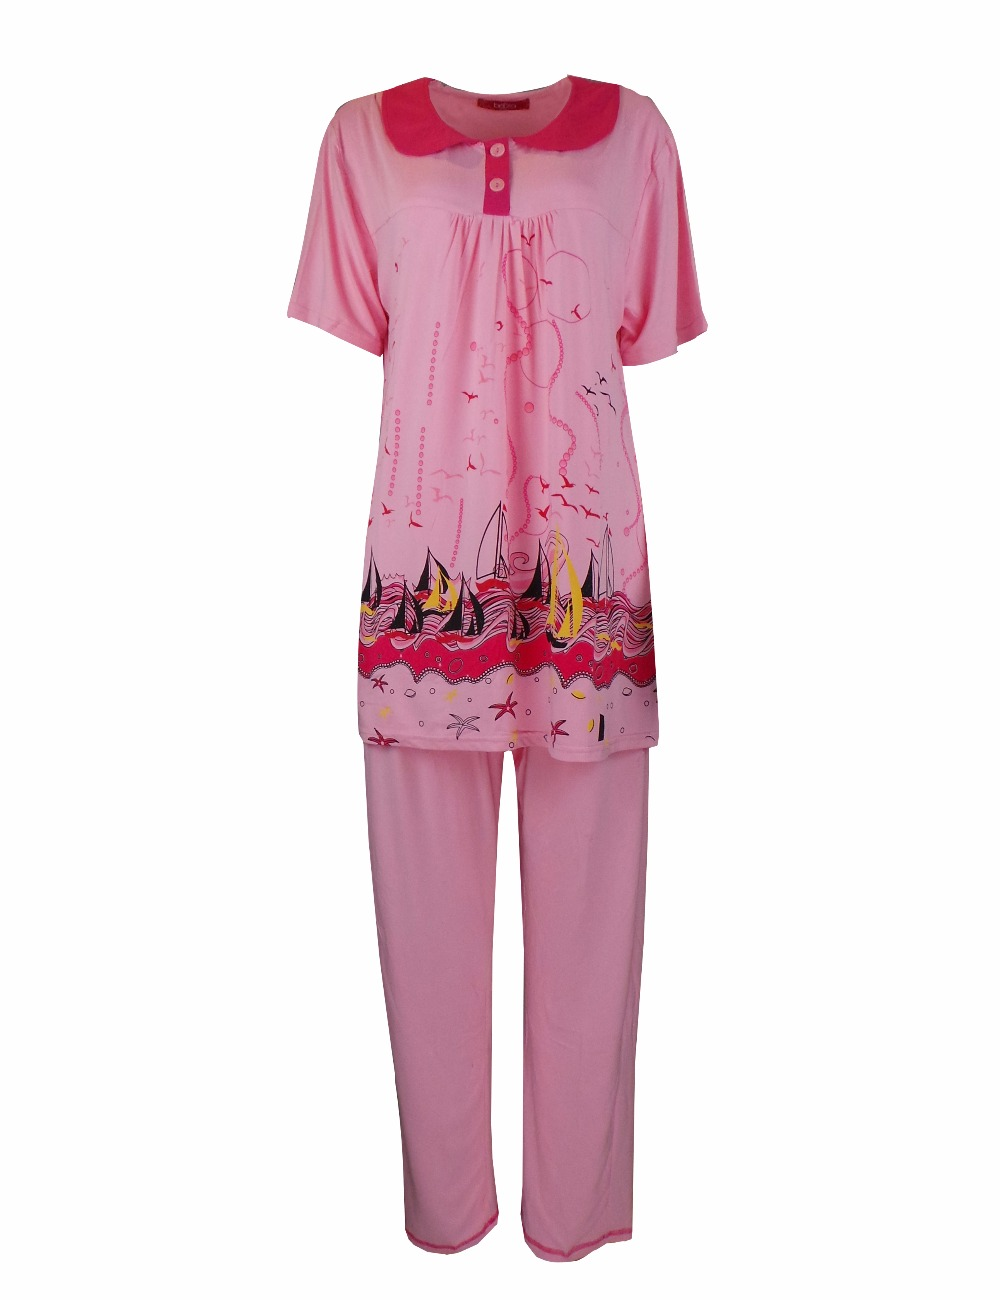 pajamas comforter and recliner pregnancy beyond the comfortable most for